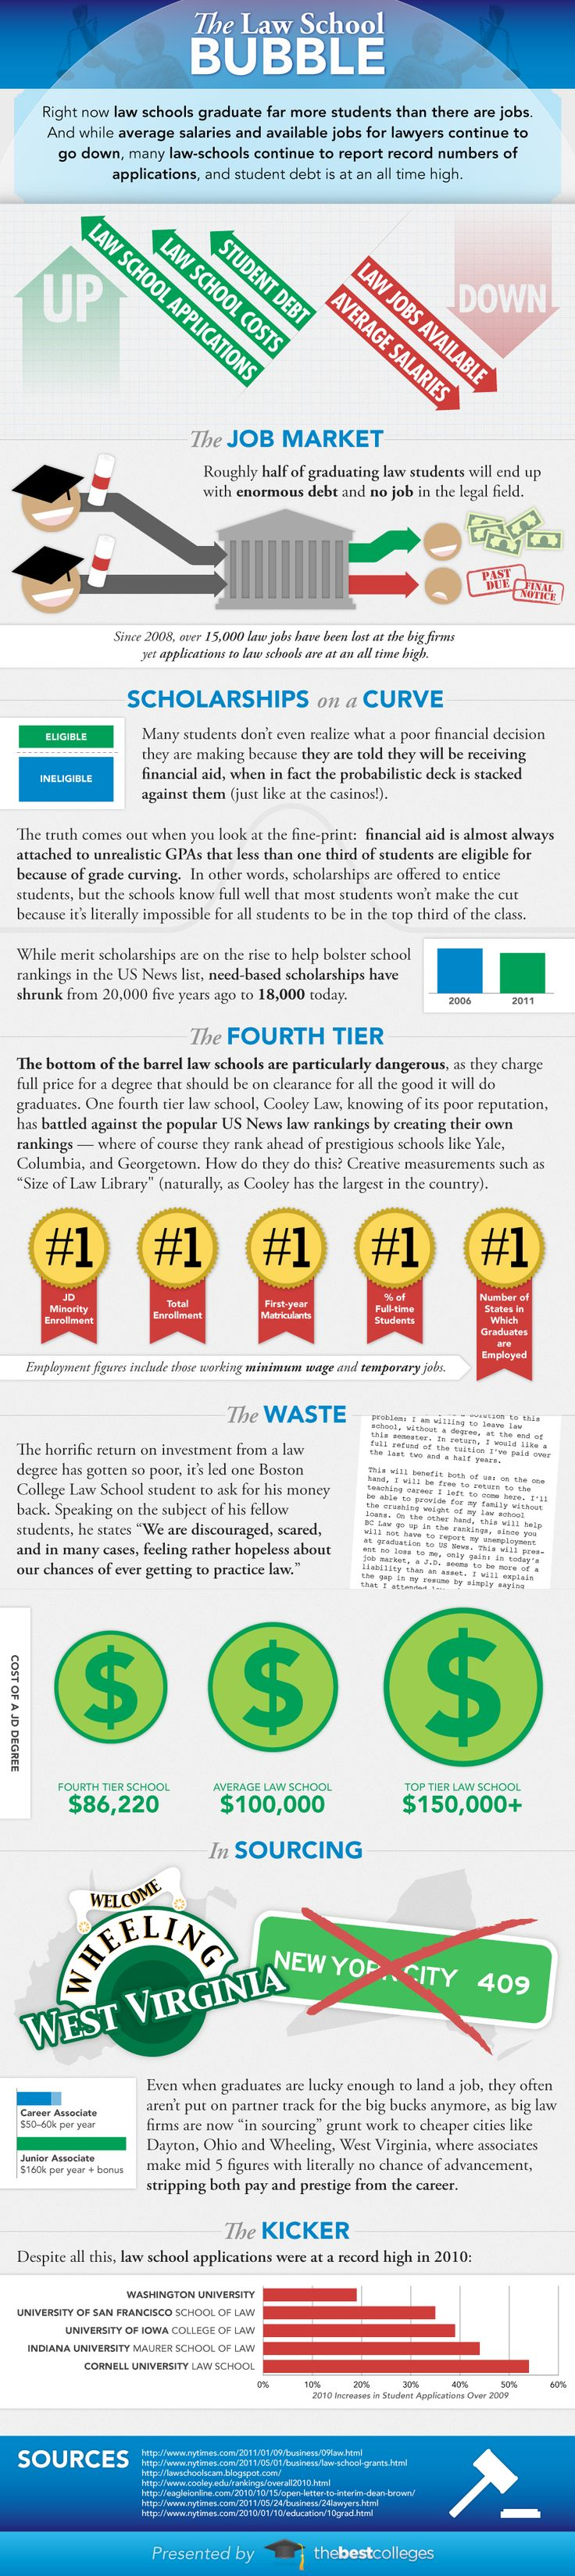 The Law School Bubble [infographic]